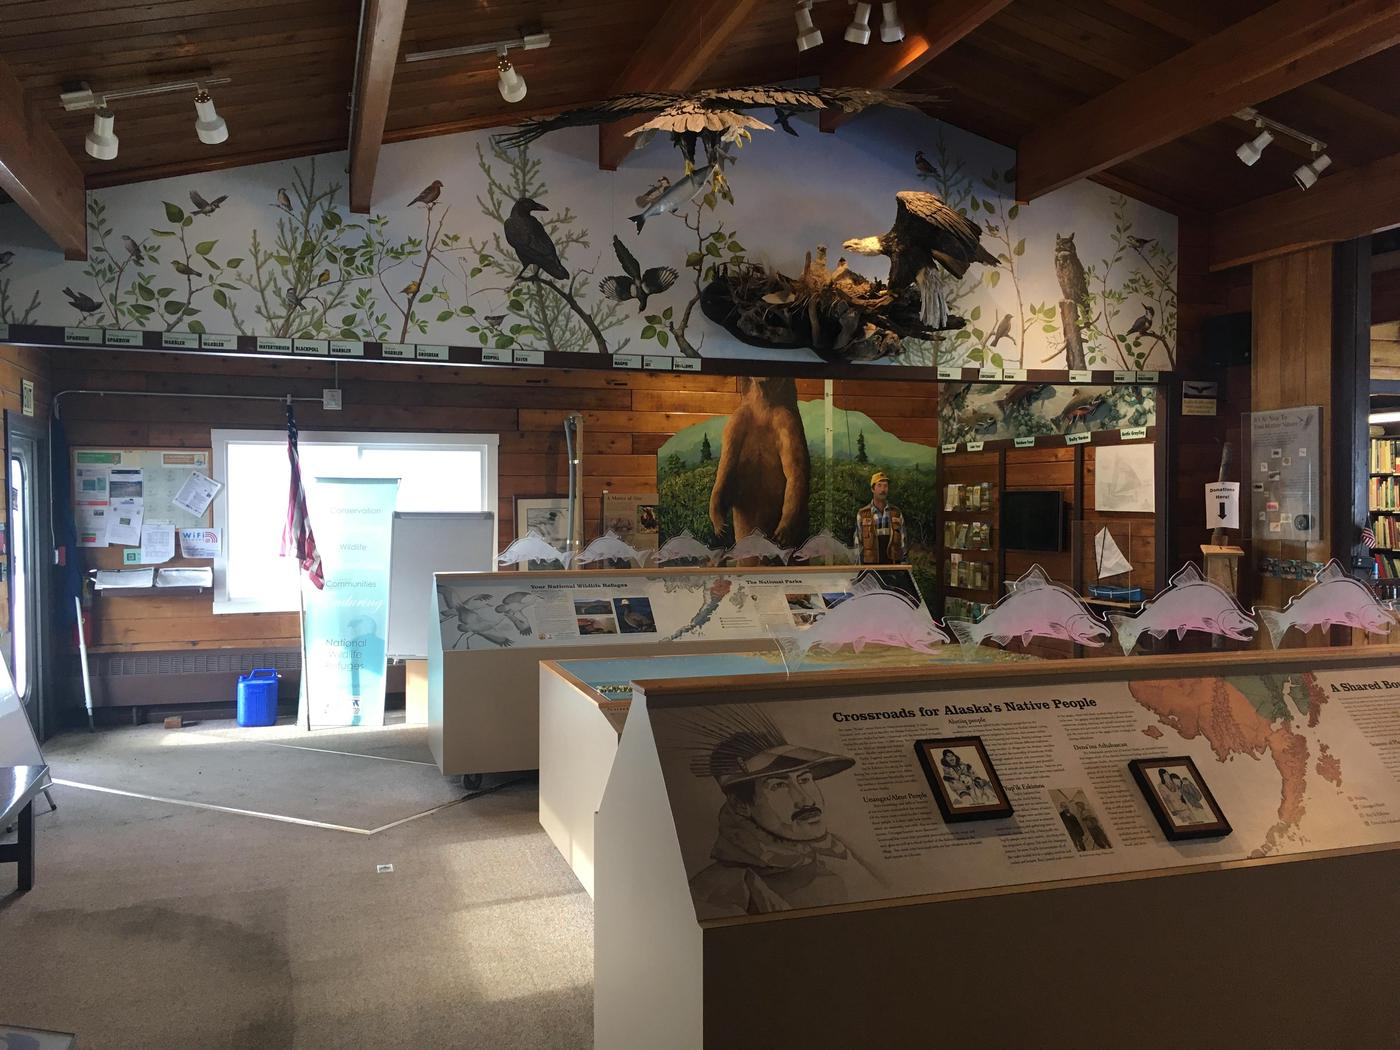 Interior of KSVC #1The exhibits in the King Salmon Visitor Center offer a sampling of what the area's public lands has to offer.